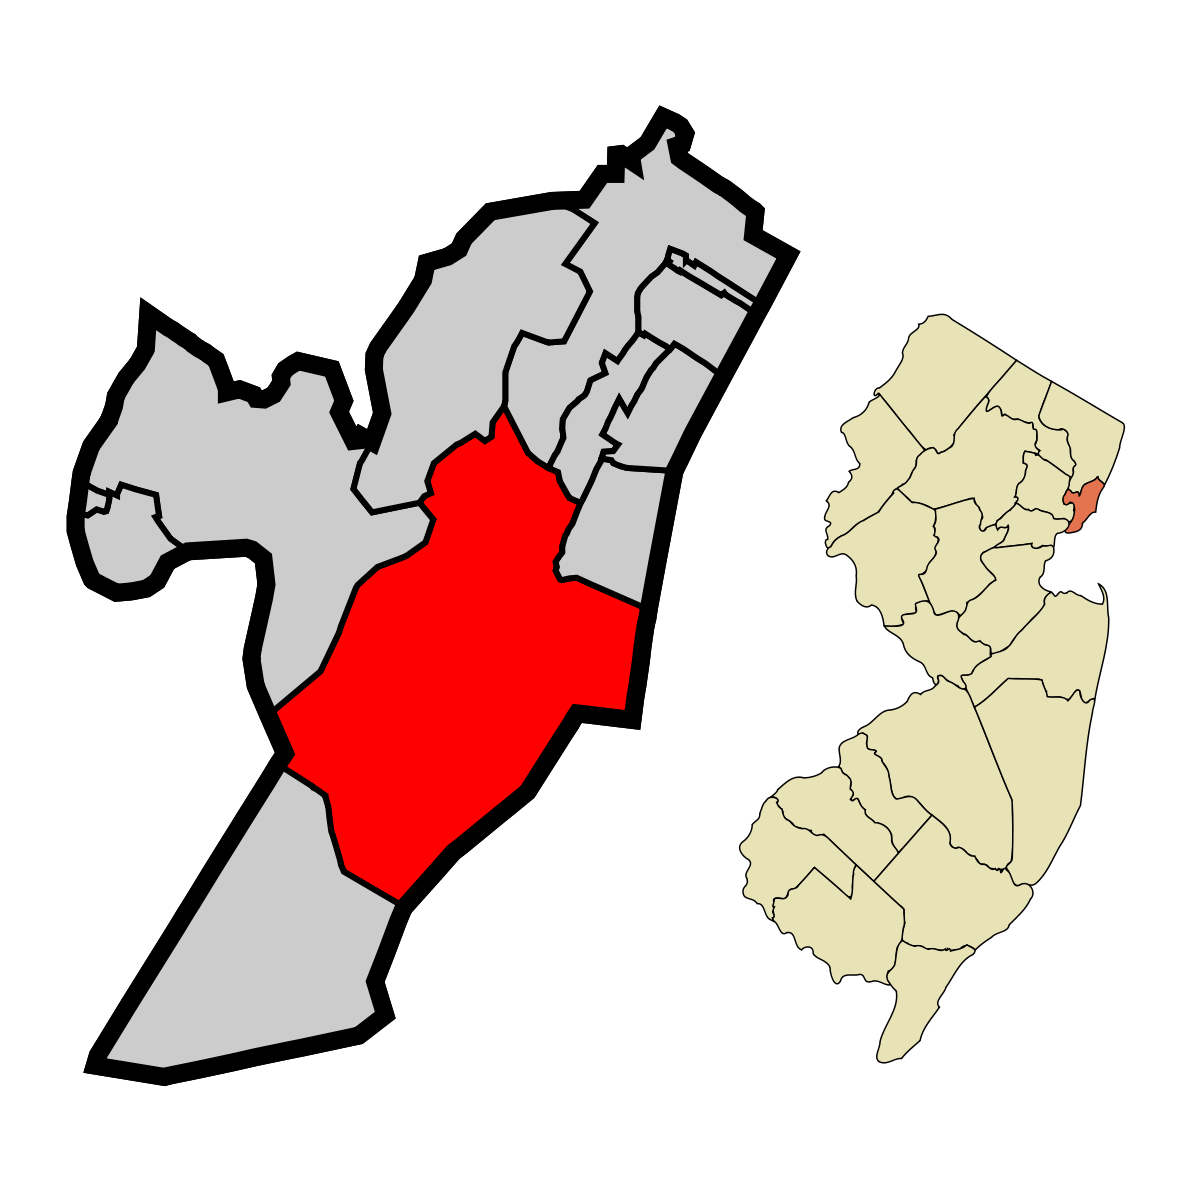 1200px Hudson County New Jersey Incorporated and Unincorporated areas Jersey City Highlightedg